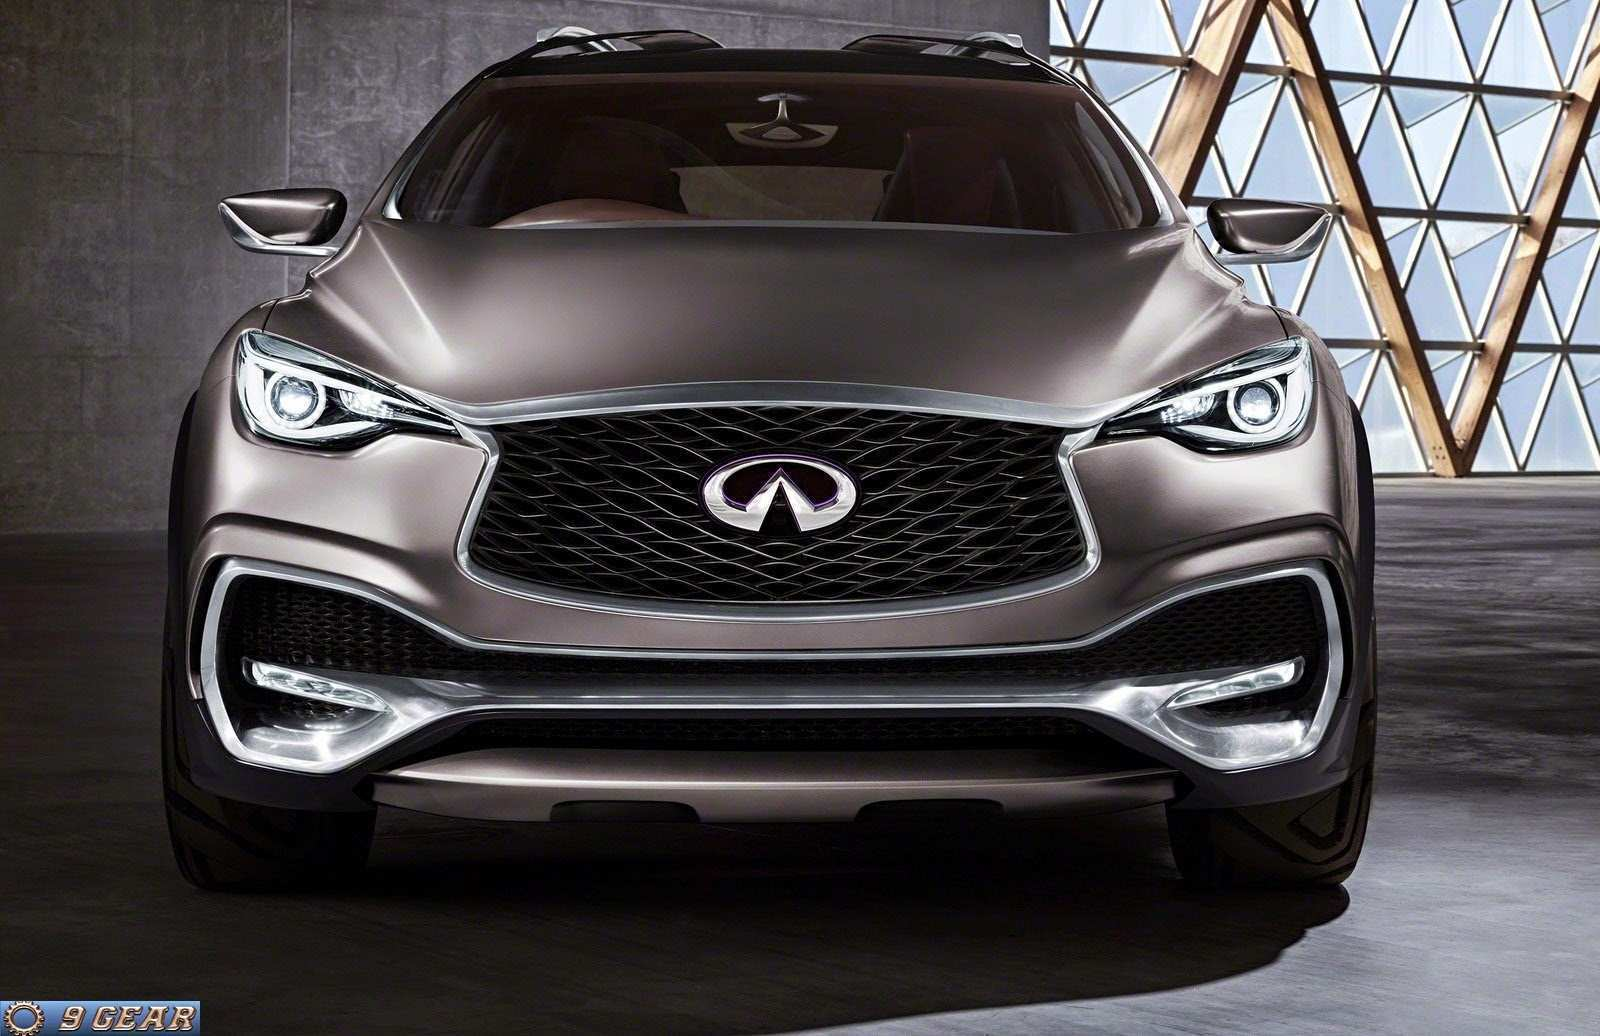 52 Great 2020 Infiniti Qx30 Dimensions Exterior with 2020 Infiniti Qx30 Dimensions